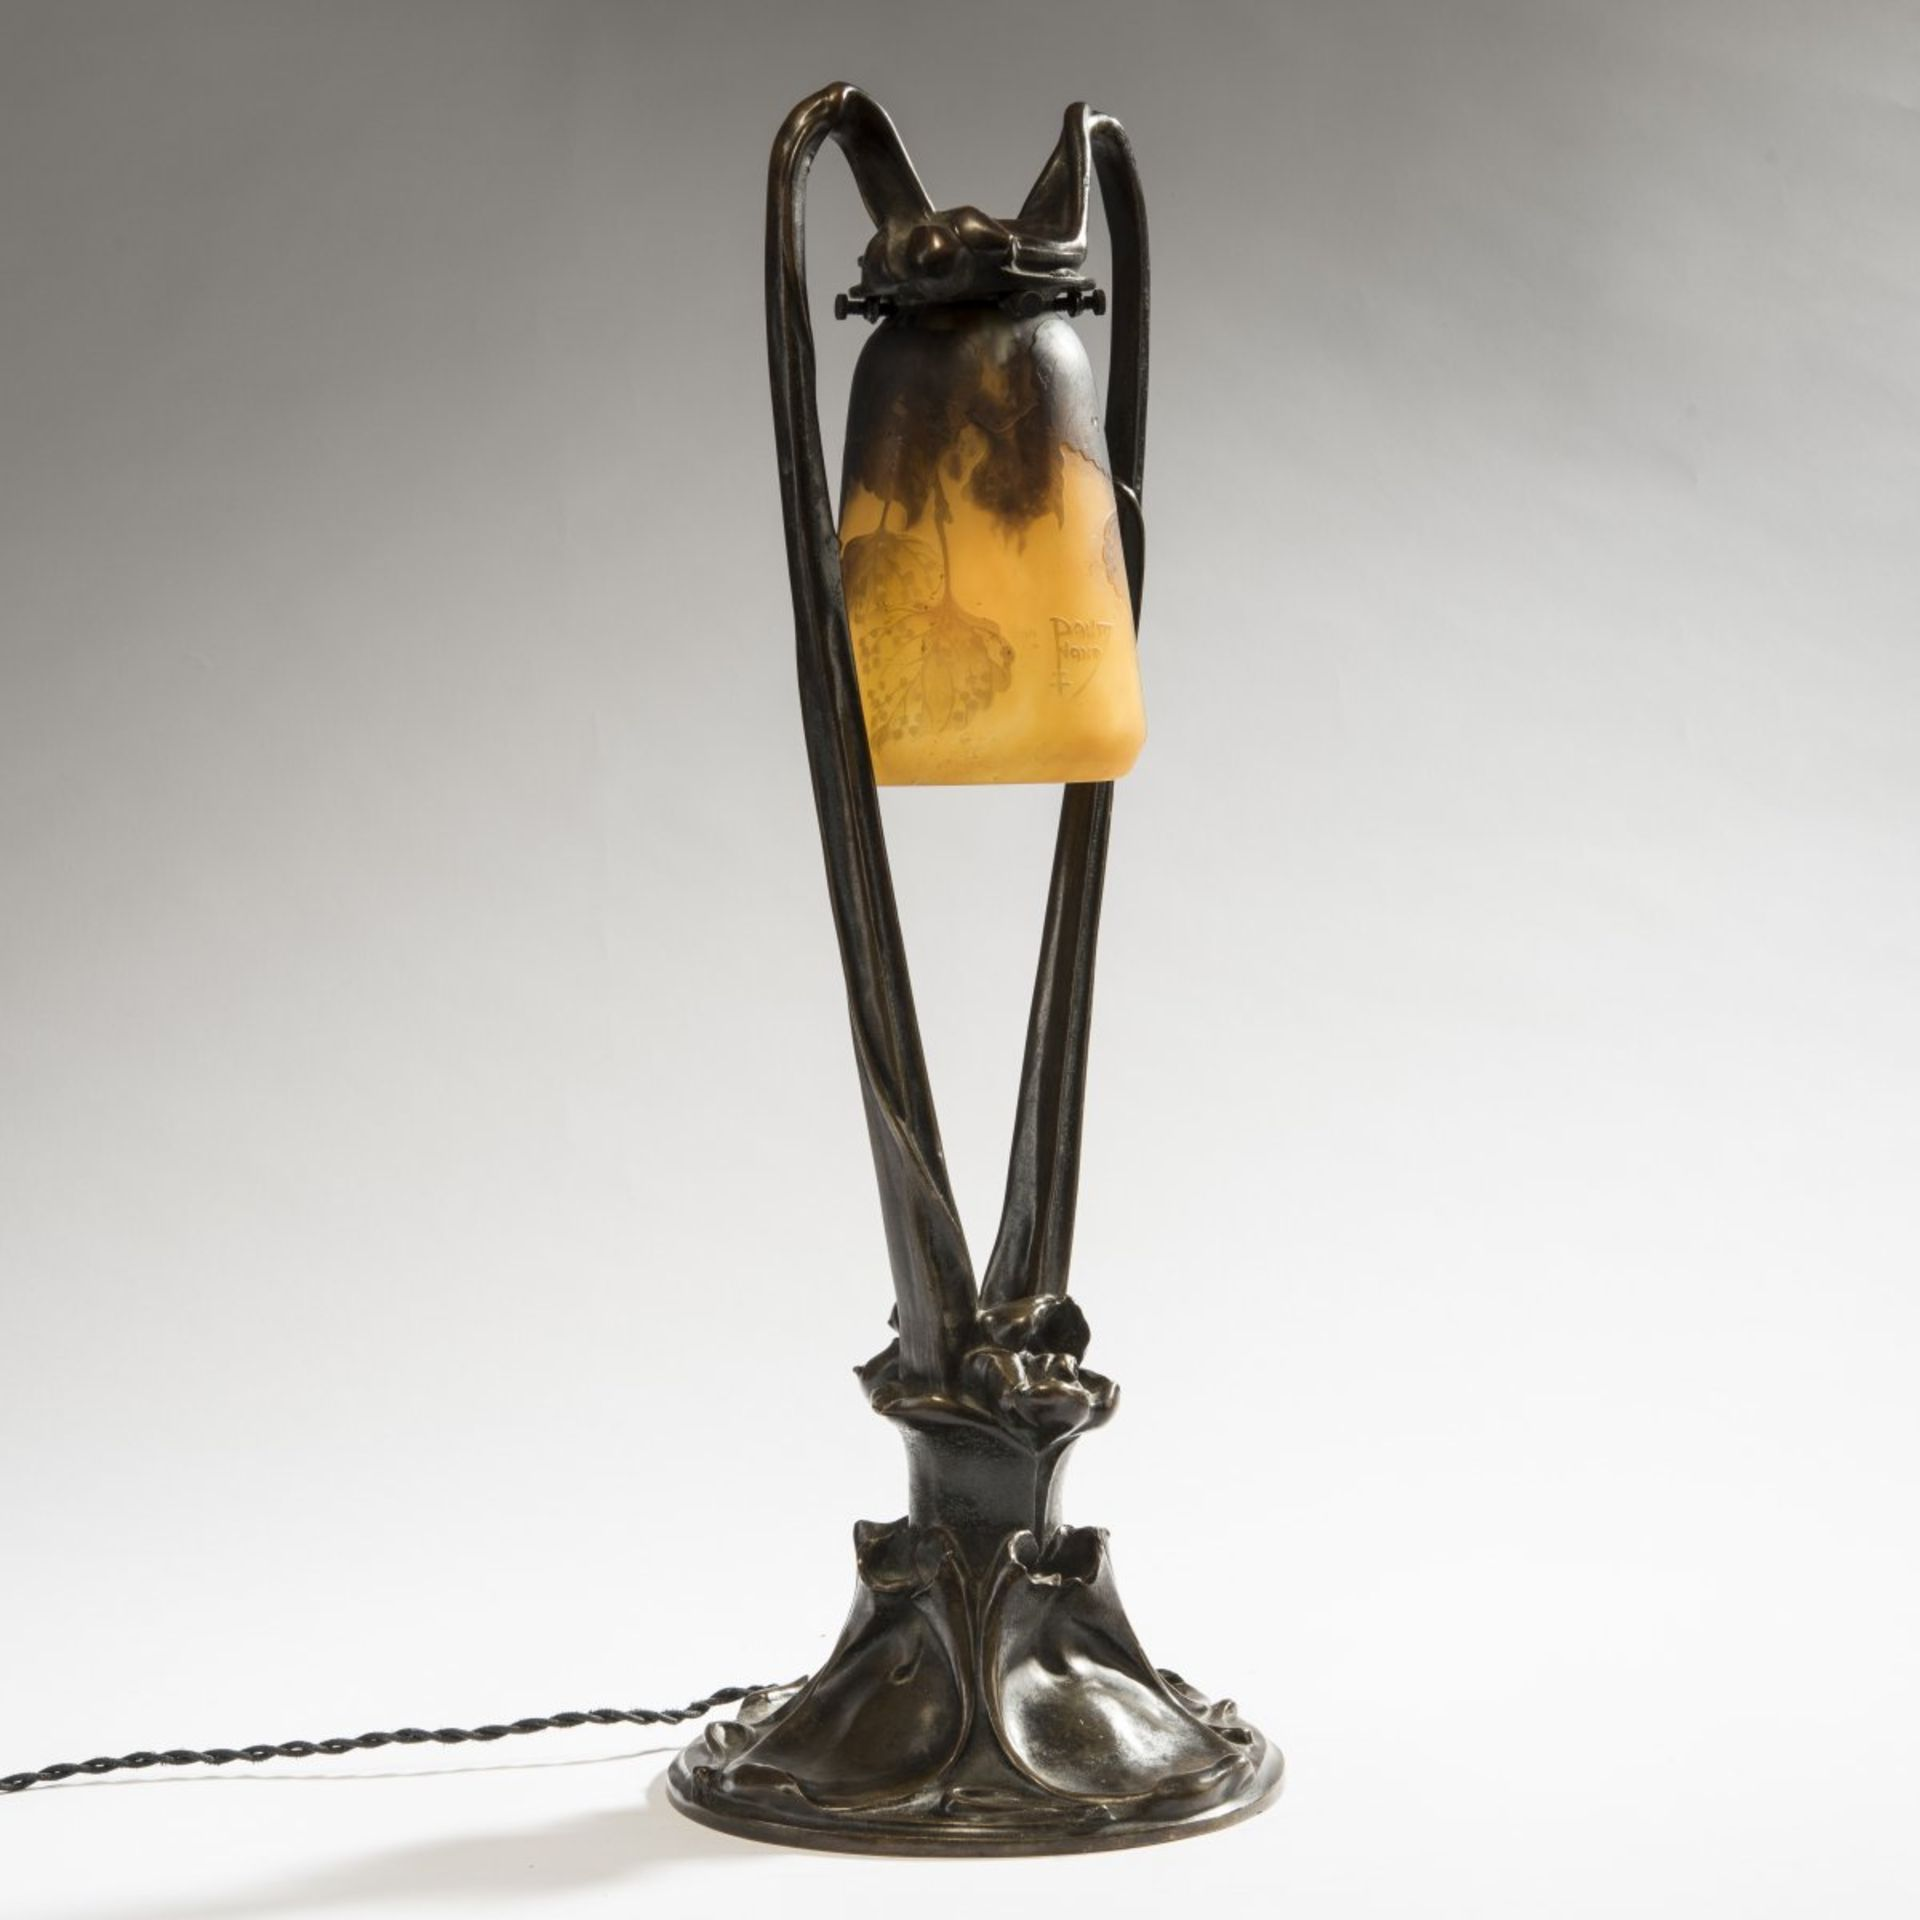 Daum Frères, Nancy; Claudius Marioton, 'Nénuphars' lamp base with 'Tilleul' shade, c. 1910 - Bild 4 aus 5